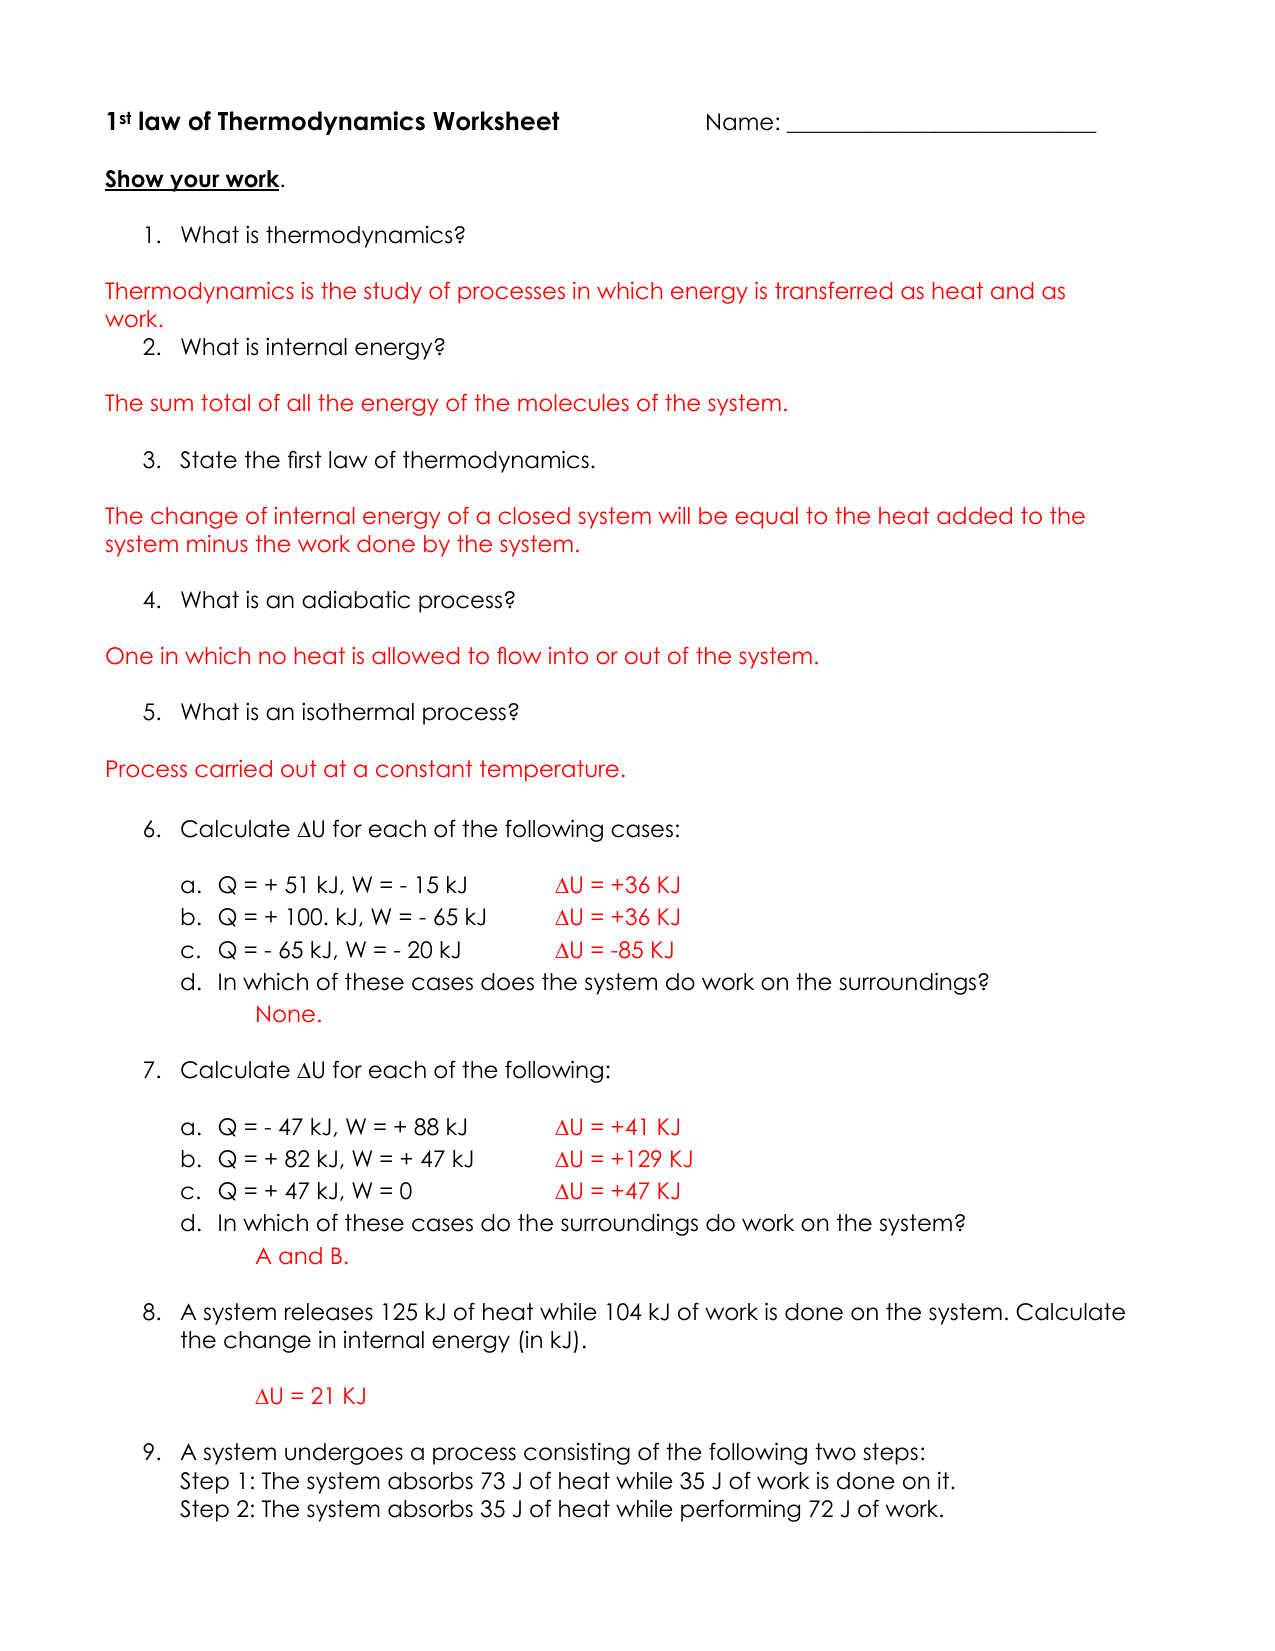 Thermodynamics Worksheet - Chapter 6 Thermodynamics Worksheet 1 ...